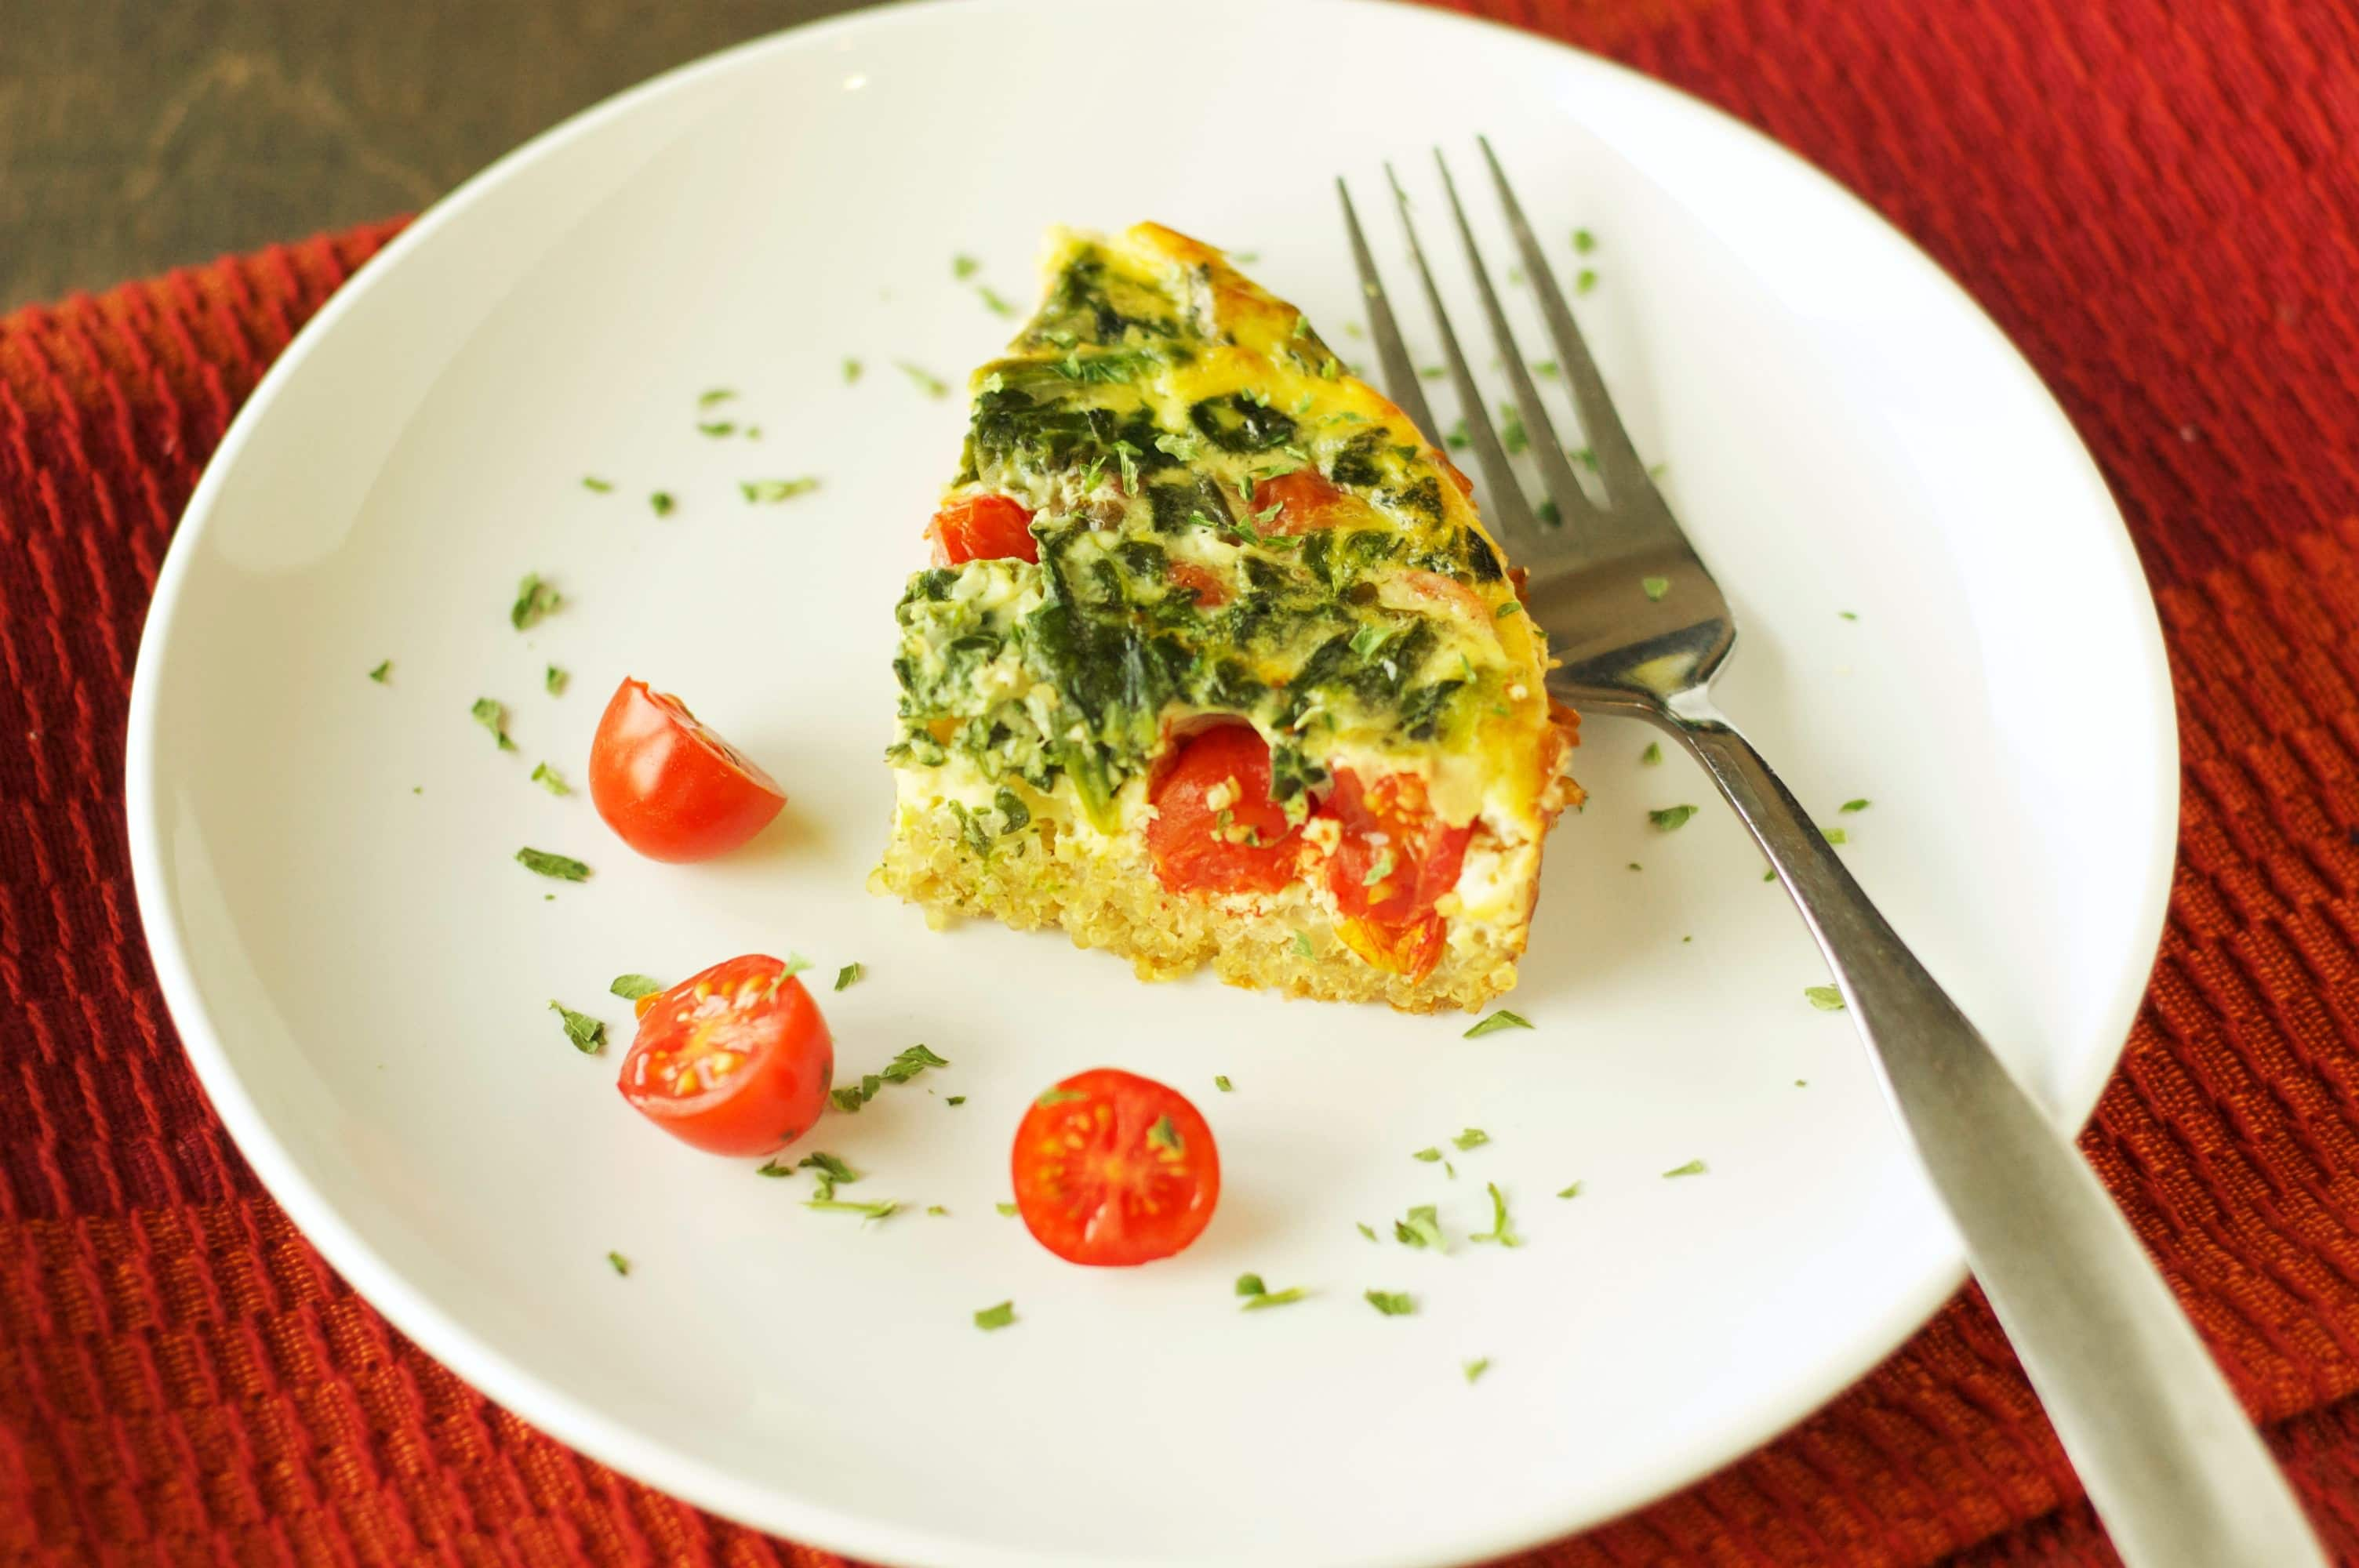 Slow Cooker Quinoa Breakfast Casserole with Tomatoes and Spinach